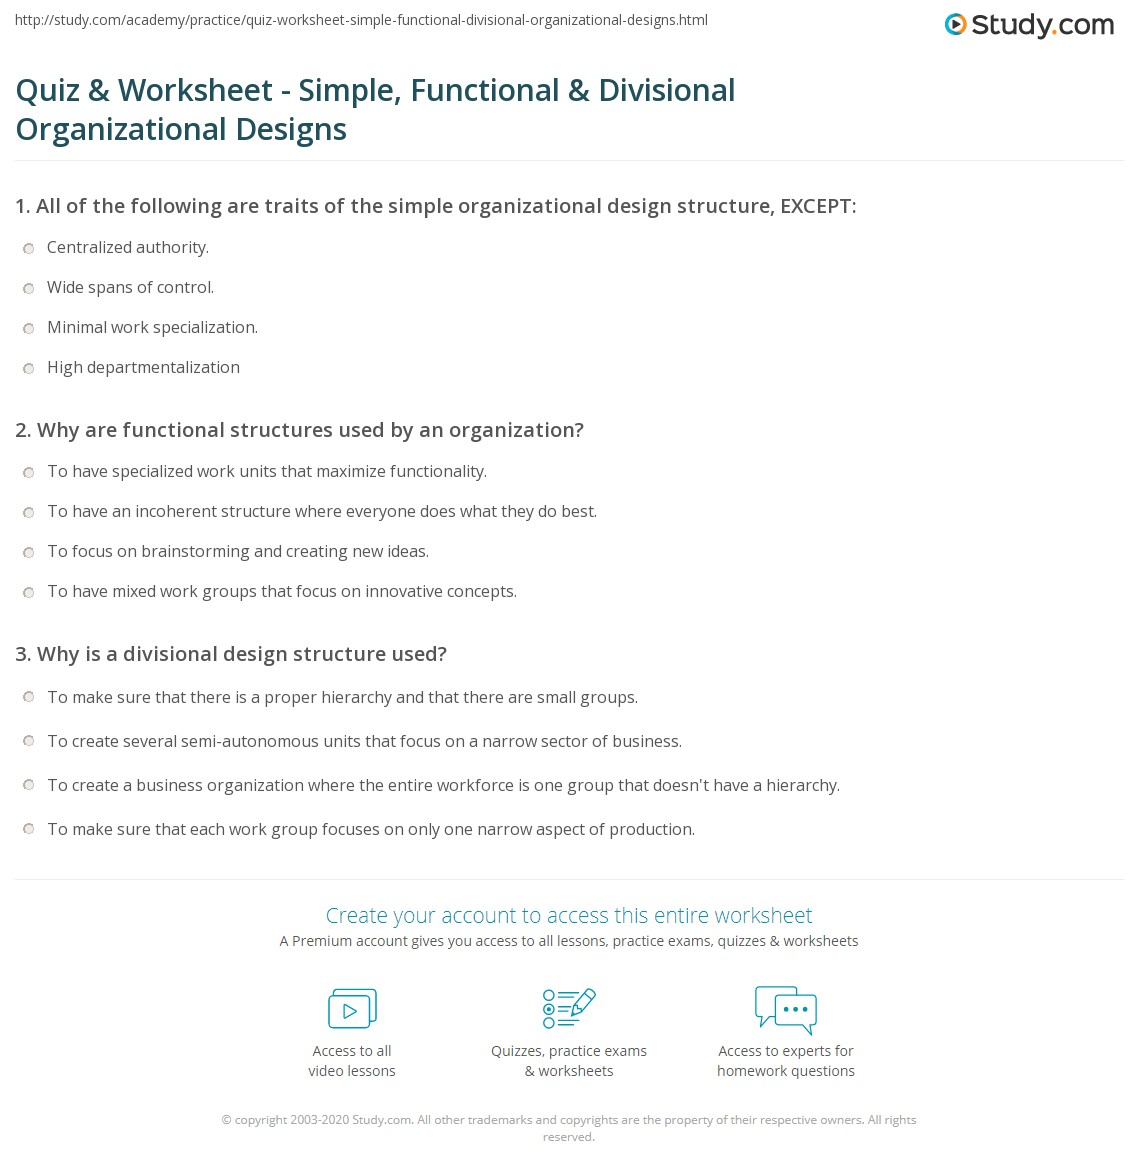 Quiz Worksheet Simple Functional Divisional